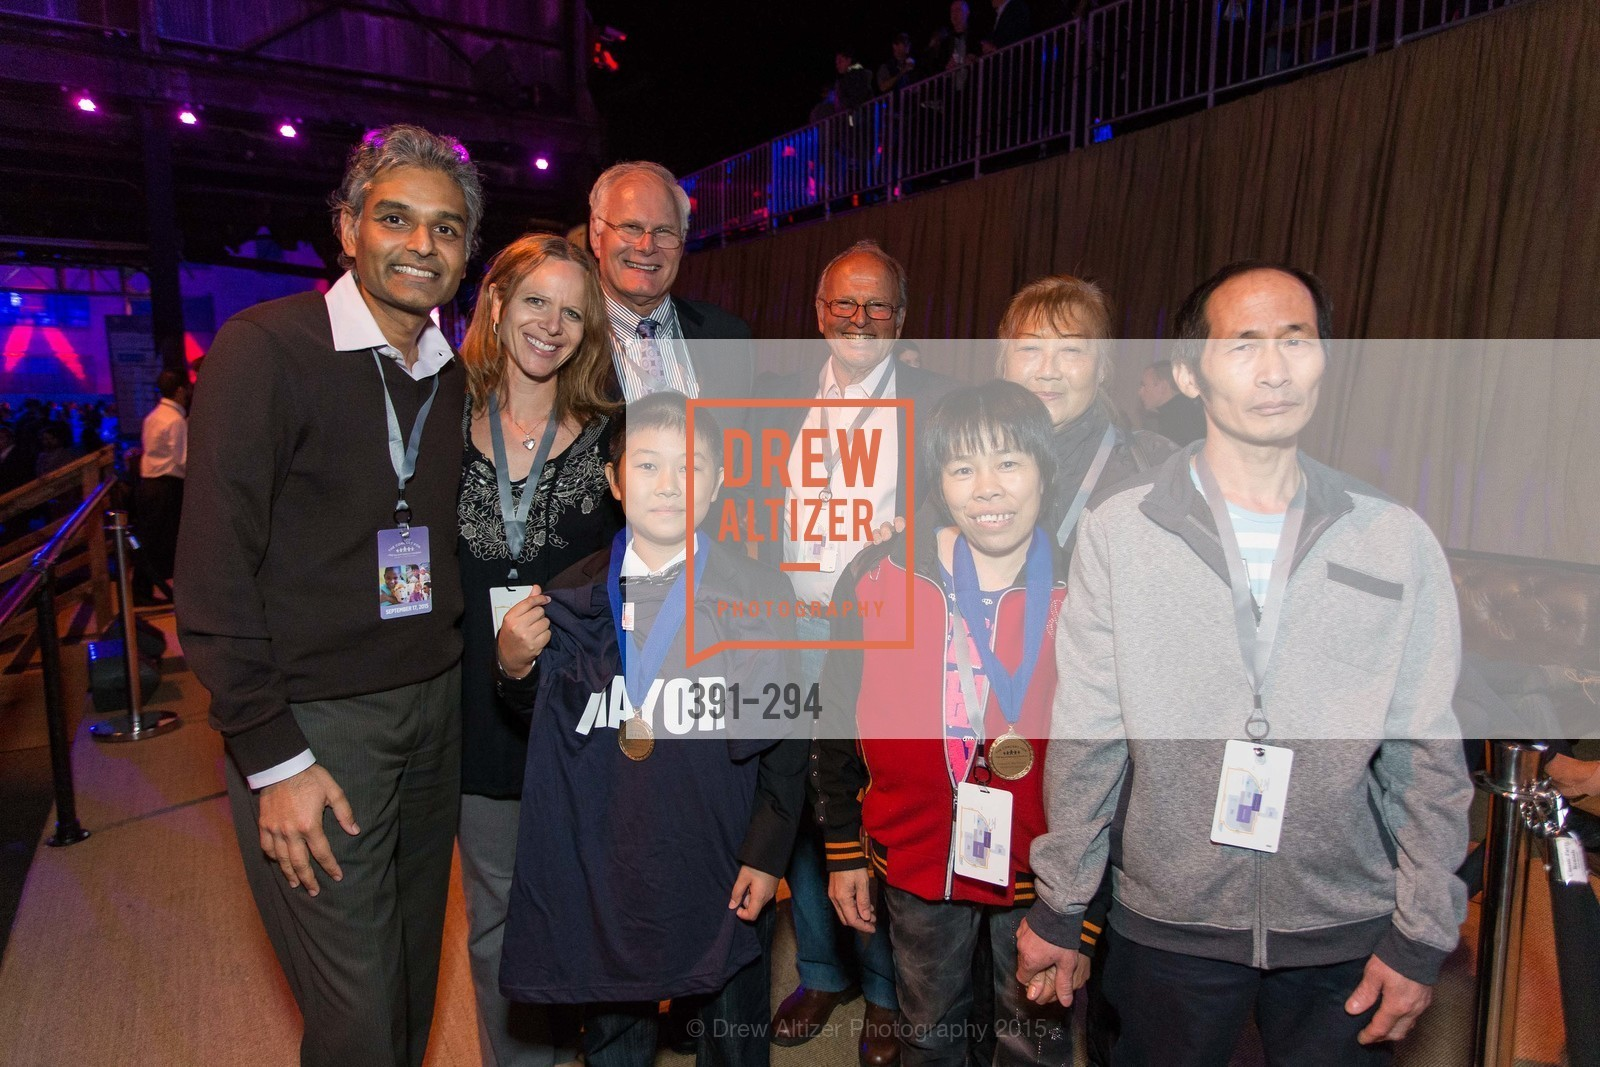 Anu Agrawal, Jennifer Michlitsch, Mark Laret, Zhenkang Zhao, Burt Lubin, Grace Chan, Chong Zhao, The Concert For UCSF Benioff Children's Hospital, Pier 70, September 17th, 2015,Drew Altizer, Drew Altizer Photography, full-service agency, private events, San Francisco photographer, photographer california